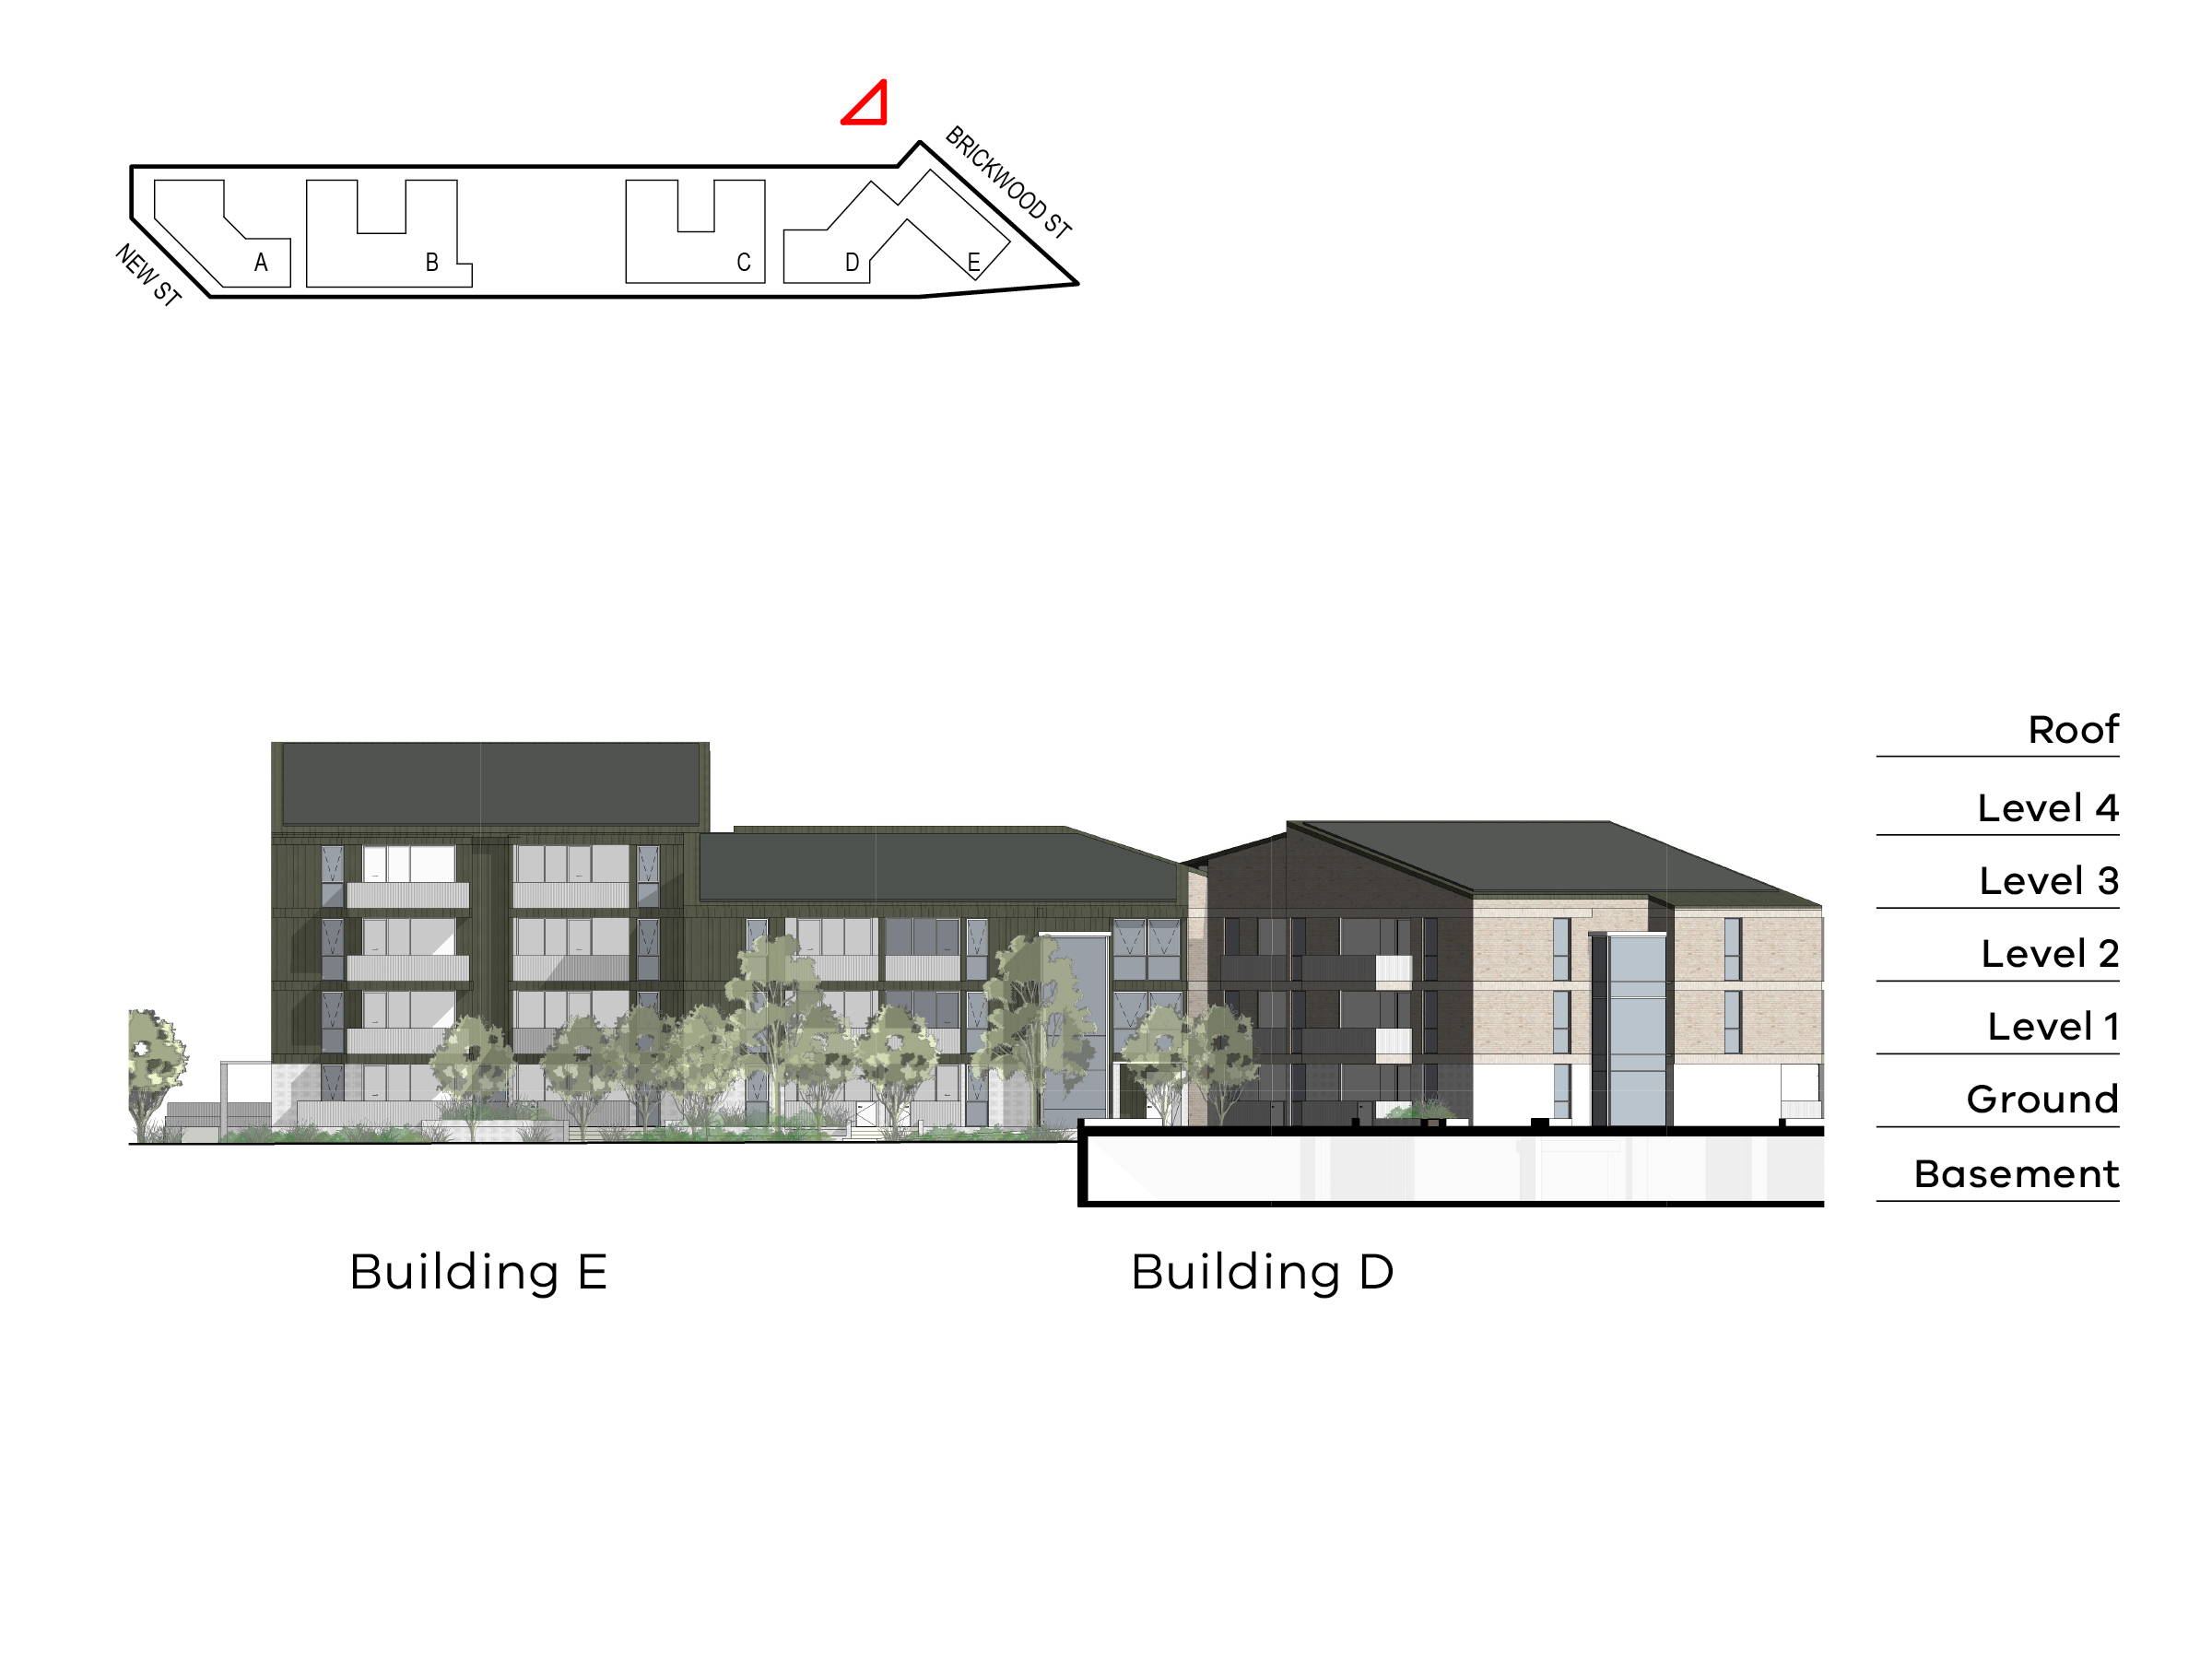 Diagram showing the heights of buildings D and E as seen from the top of the site near Brickwood Street. Building D includes basement, ground level, level 1-2 and a roof, building E includes ground level, level 1-3 and a roof.